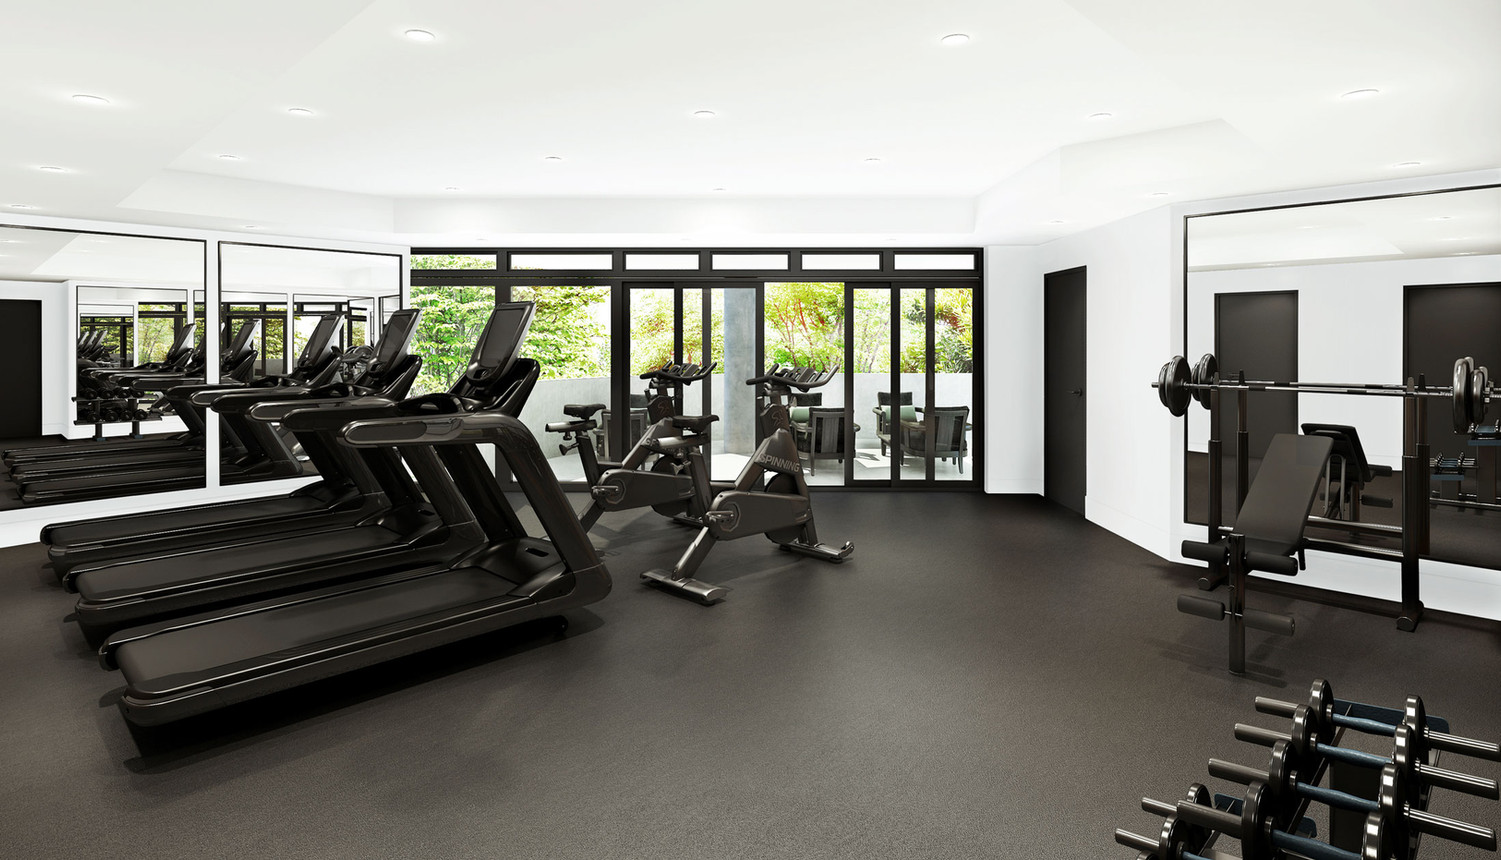 Amenities | Health & Fitness Wing